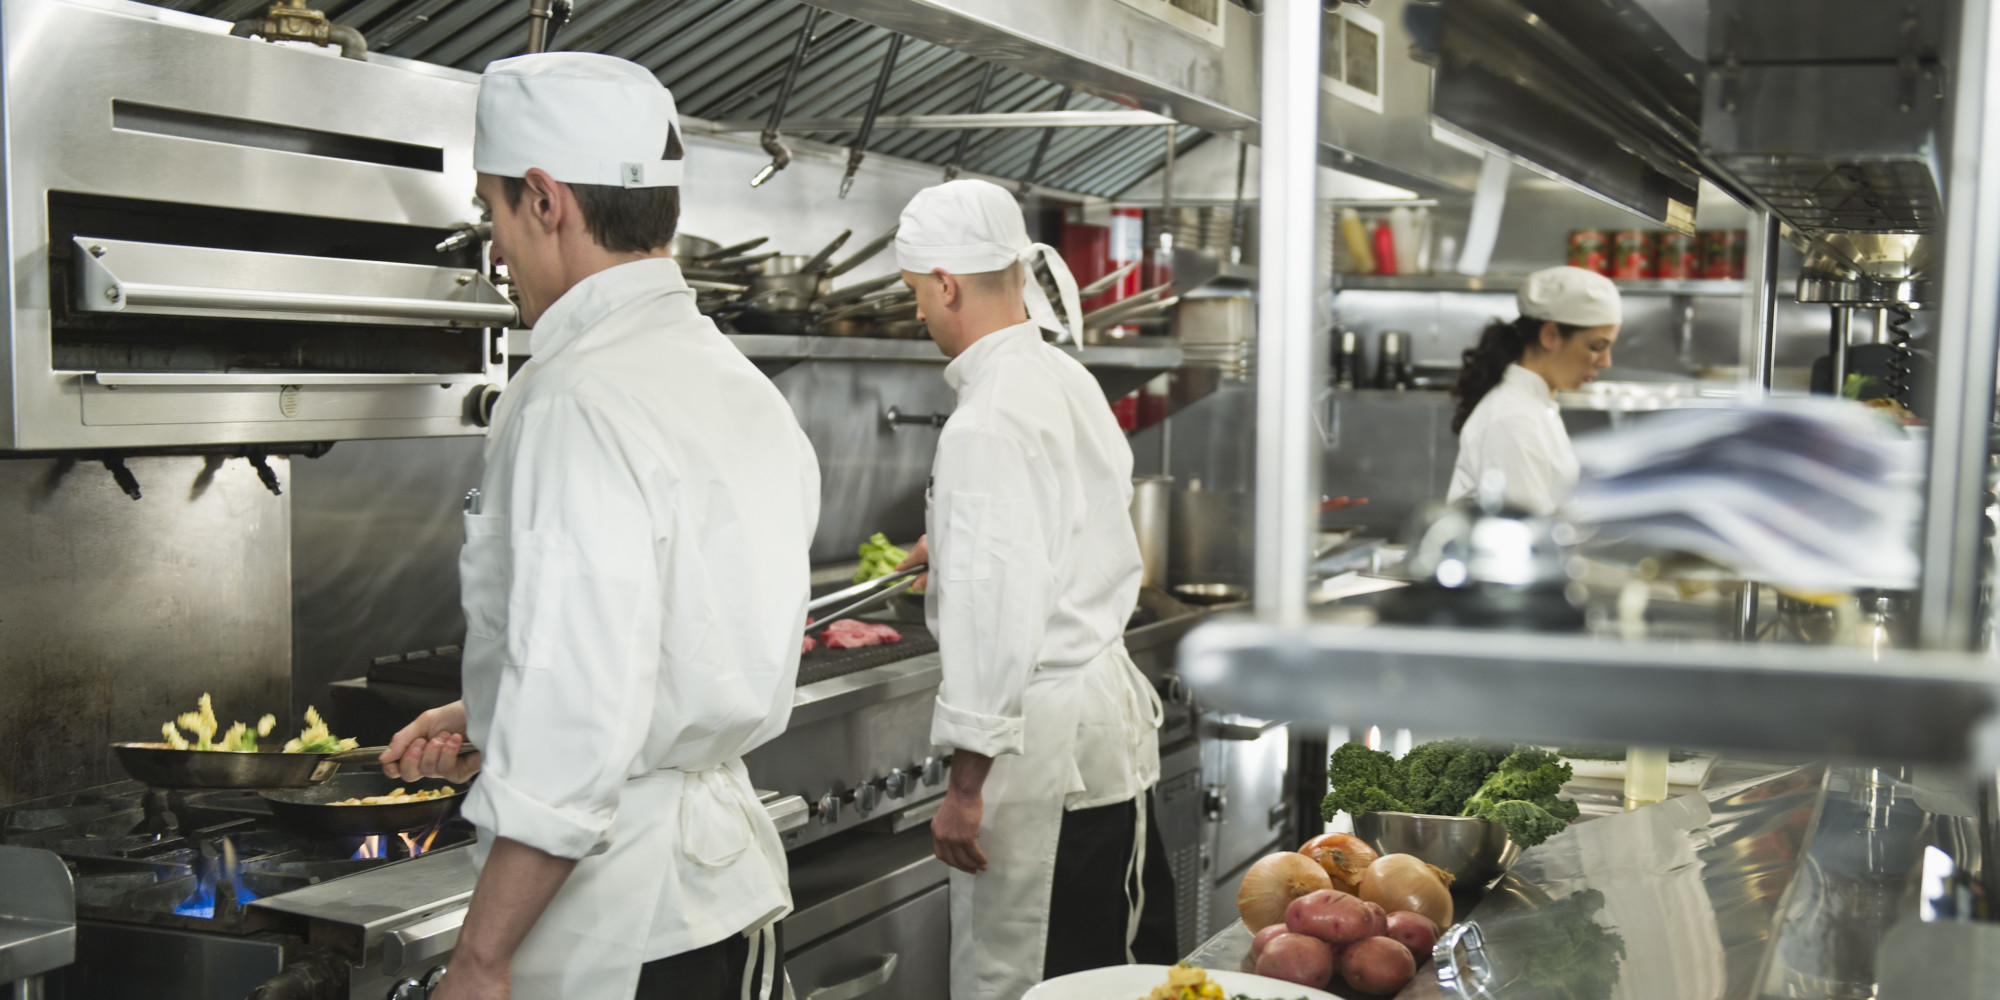 Chef Shortage In Restaurant Kitchens